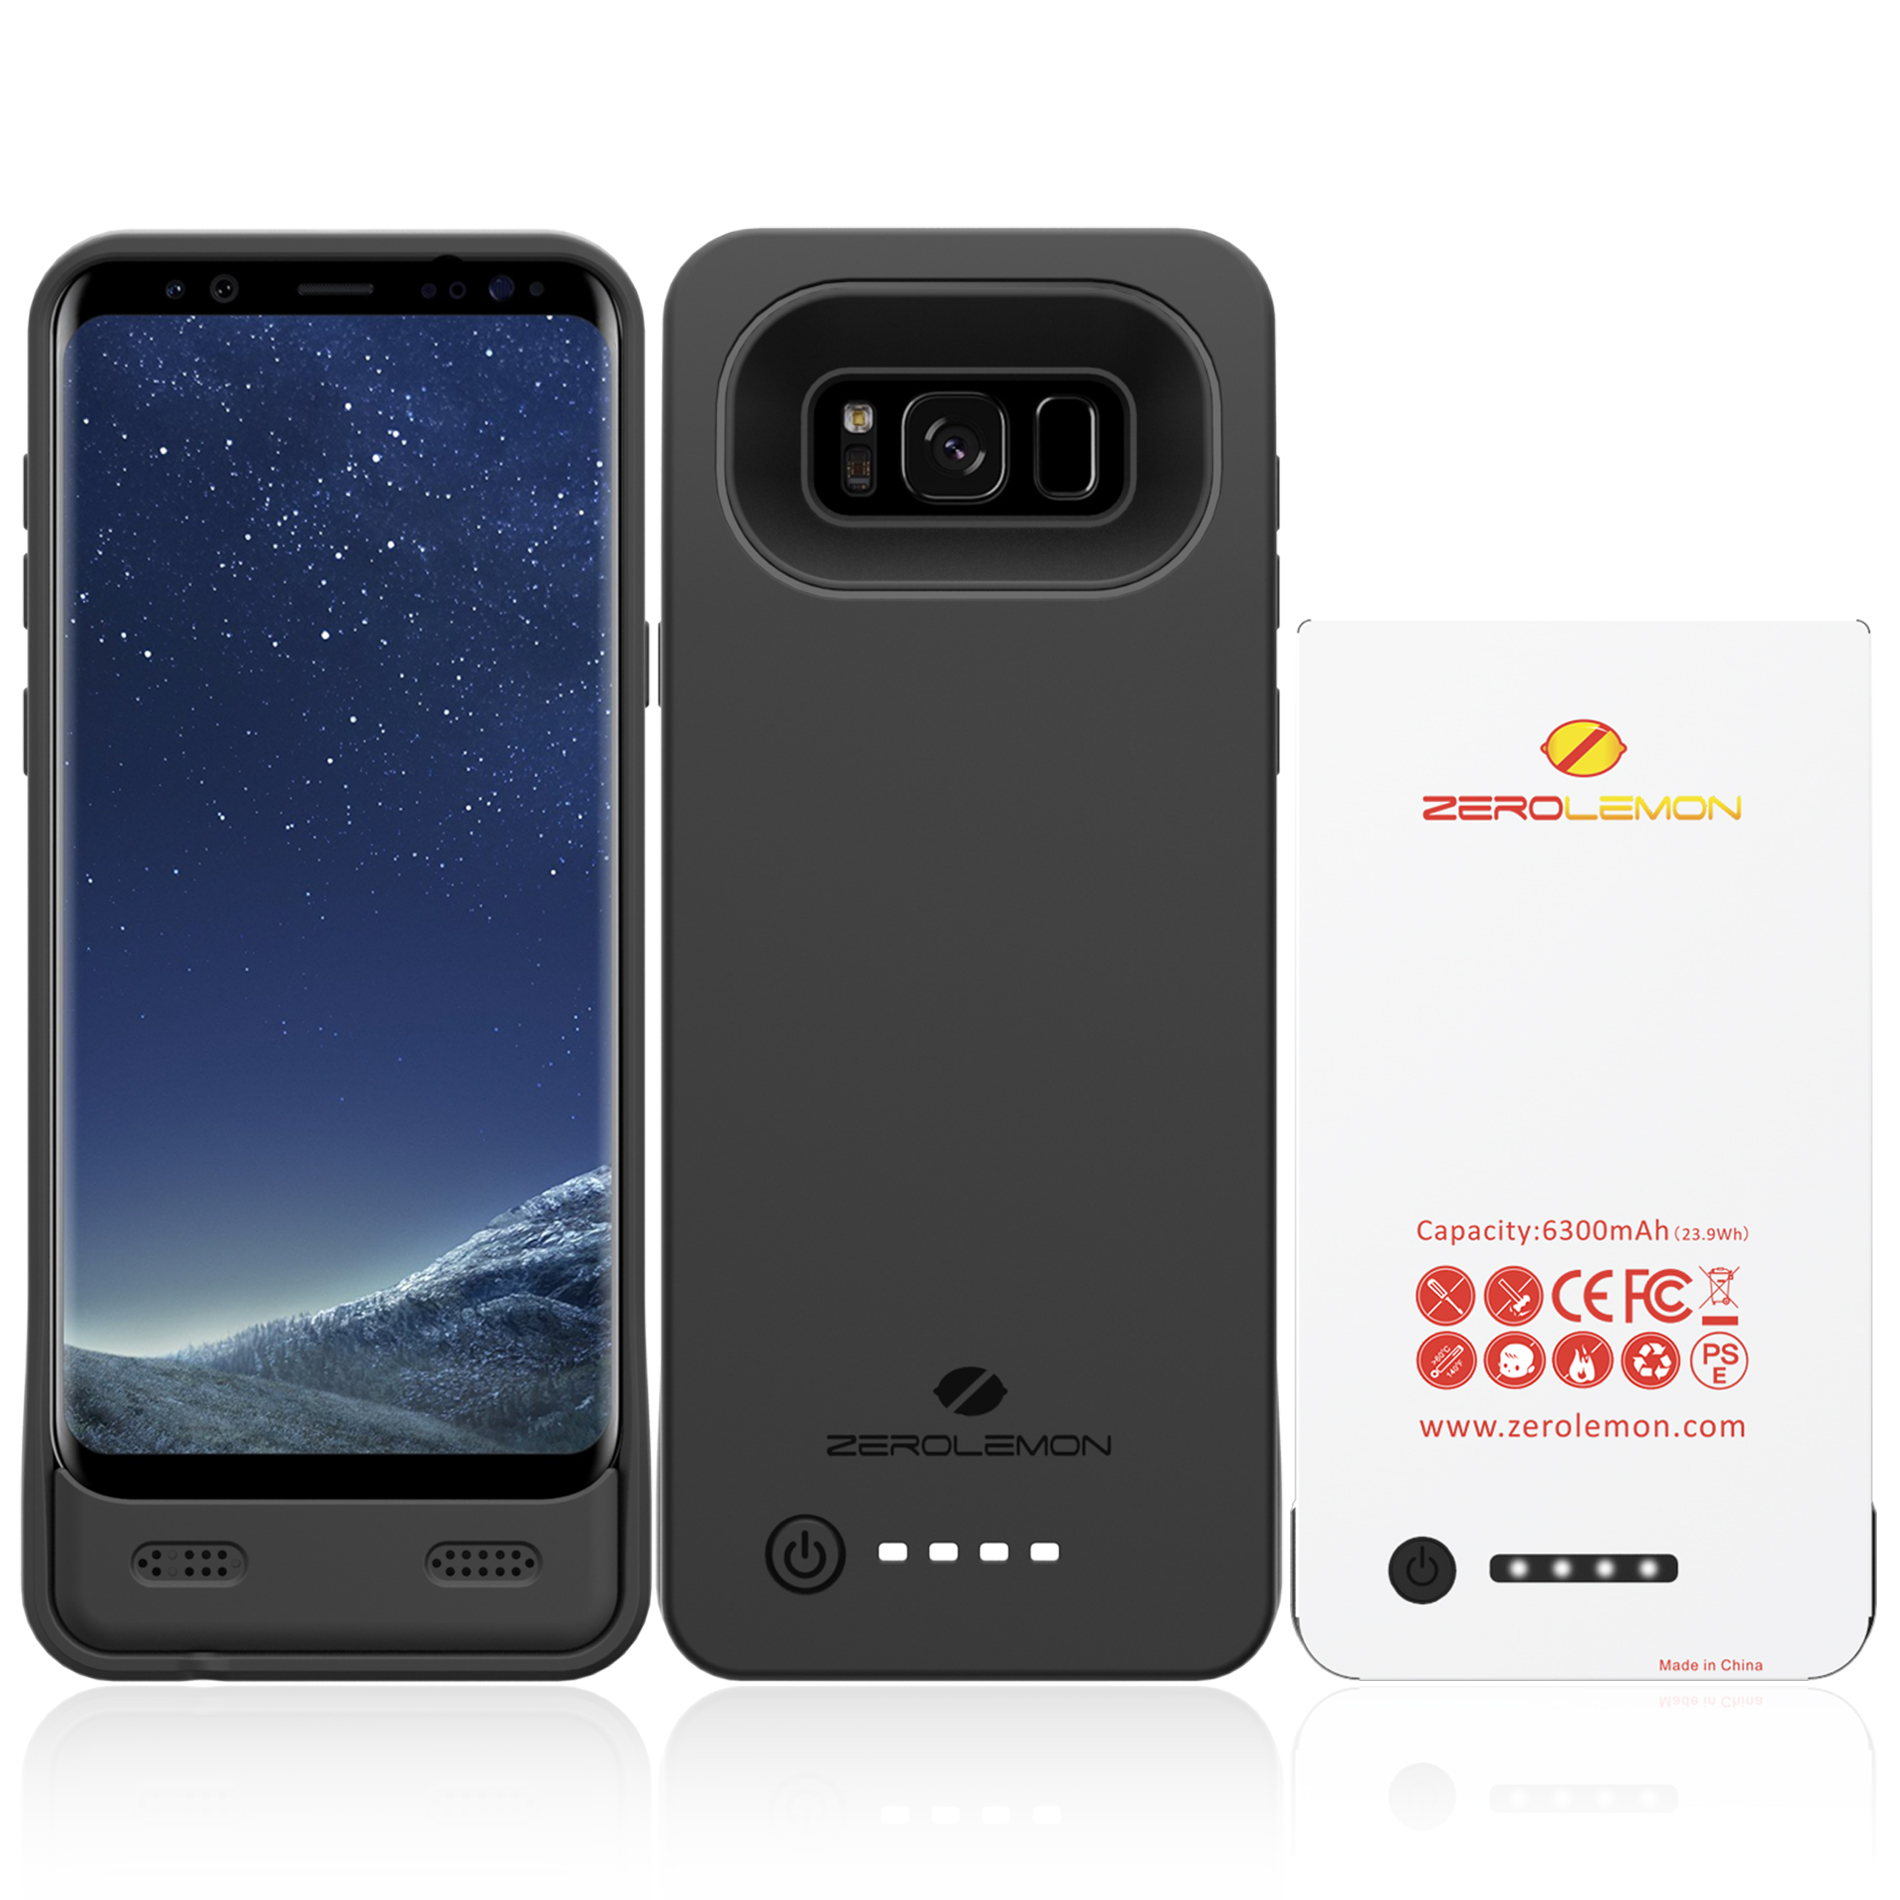 Zerolemon Releases Battery Cases For The Samsung Galaxy S8